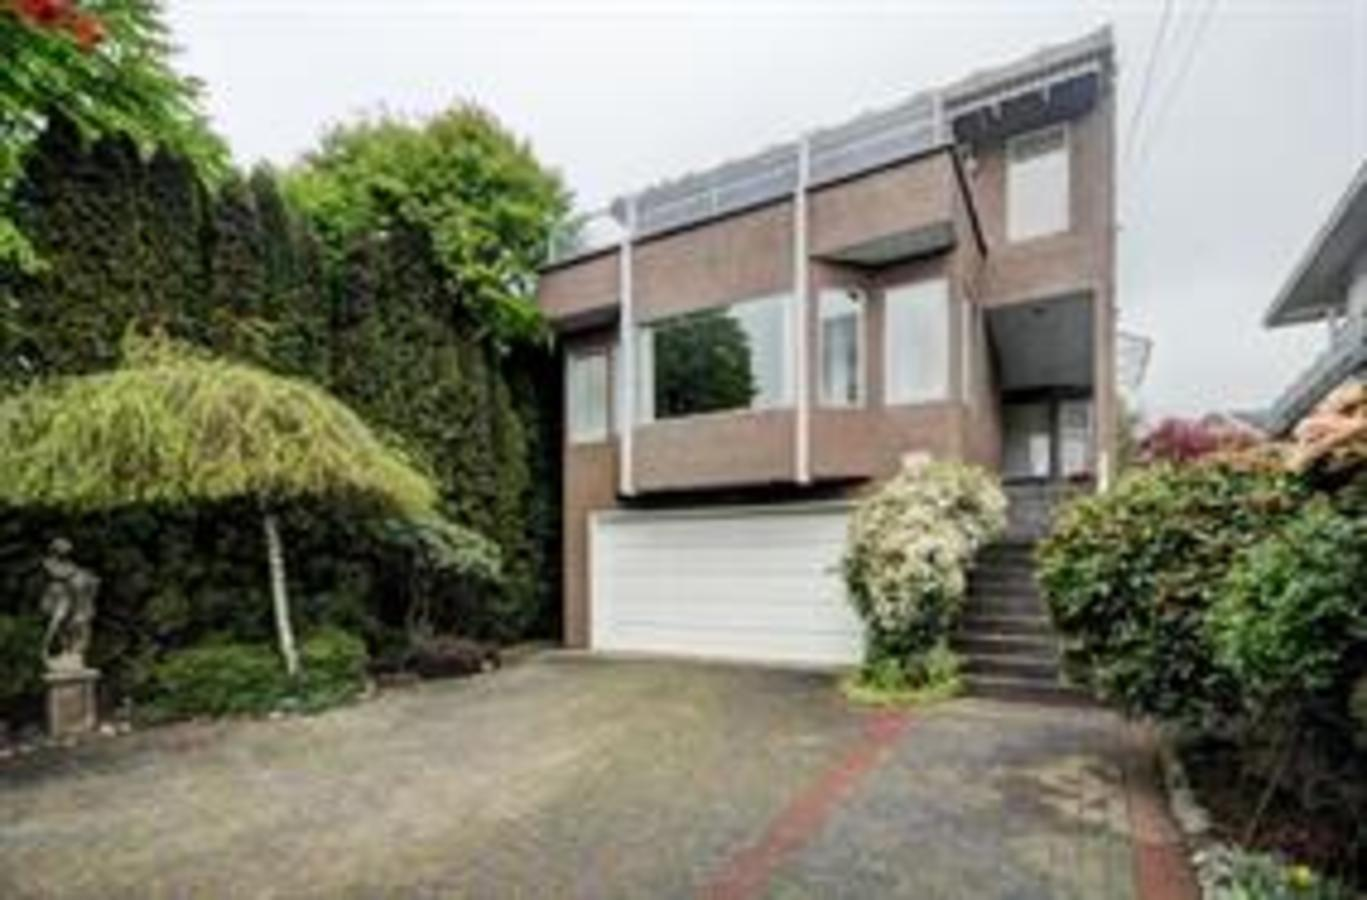 262075215-1 at 2331 Marine Drive, Dundarave, West Vancouver